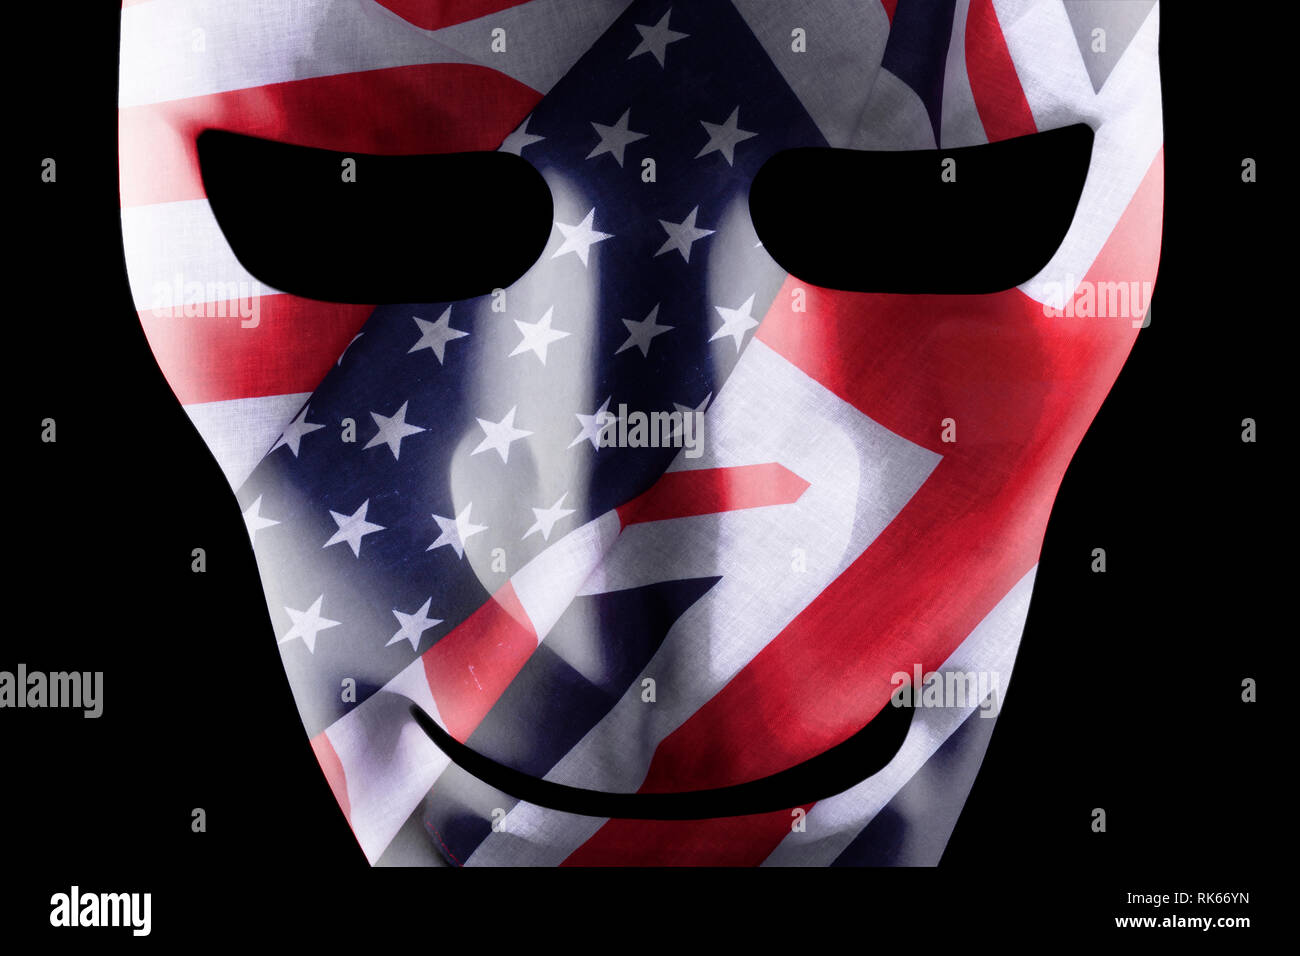 Mask with USA and British flags texture overlay - Stock Image